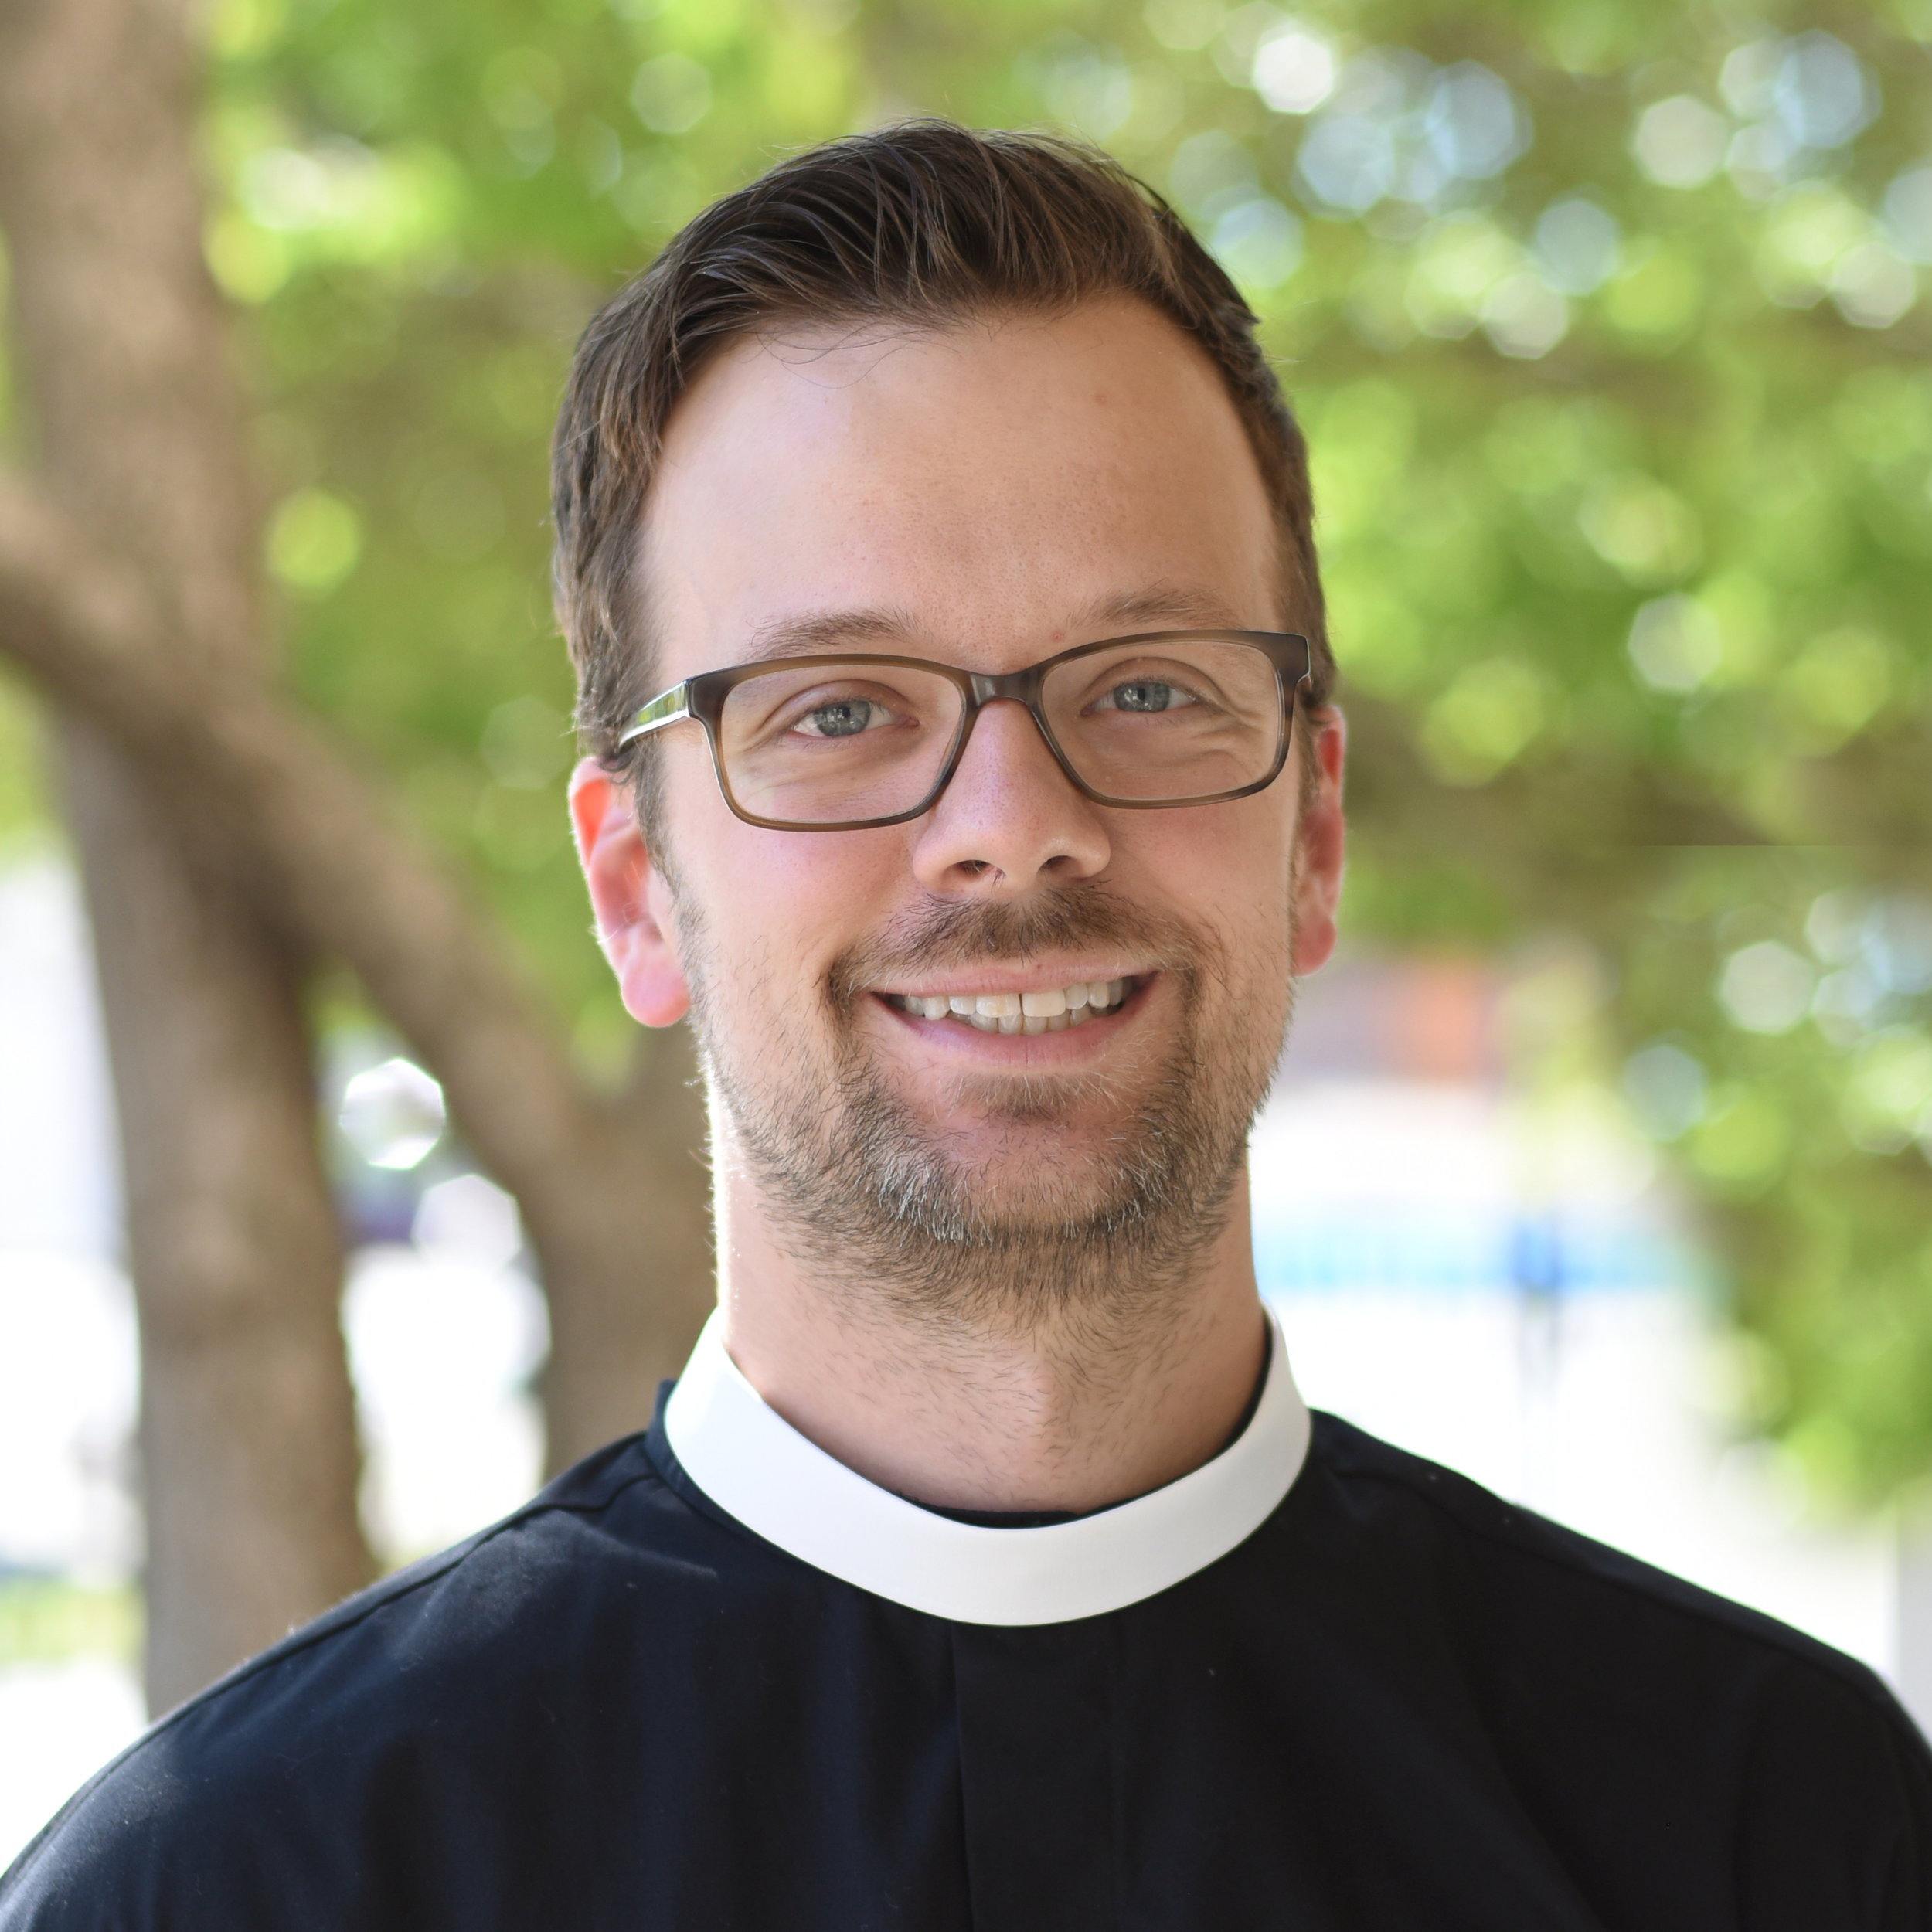 The Rev.Chris Myers- Associate Rector - Chris Myers serves as the Associate Rector of St. Bartholomew's Anglican. He graduated from Redeemer Seminary with an M.Div. in 2013 and was ordained as a priest in the Anglican Mission in May of 2015. He is currently doing doctoral work in theology at Durham University (UK). He and his wife Morgan have two delightful daughters, Eleanor and Rowan.Email - chris@stbartsdallas.org